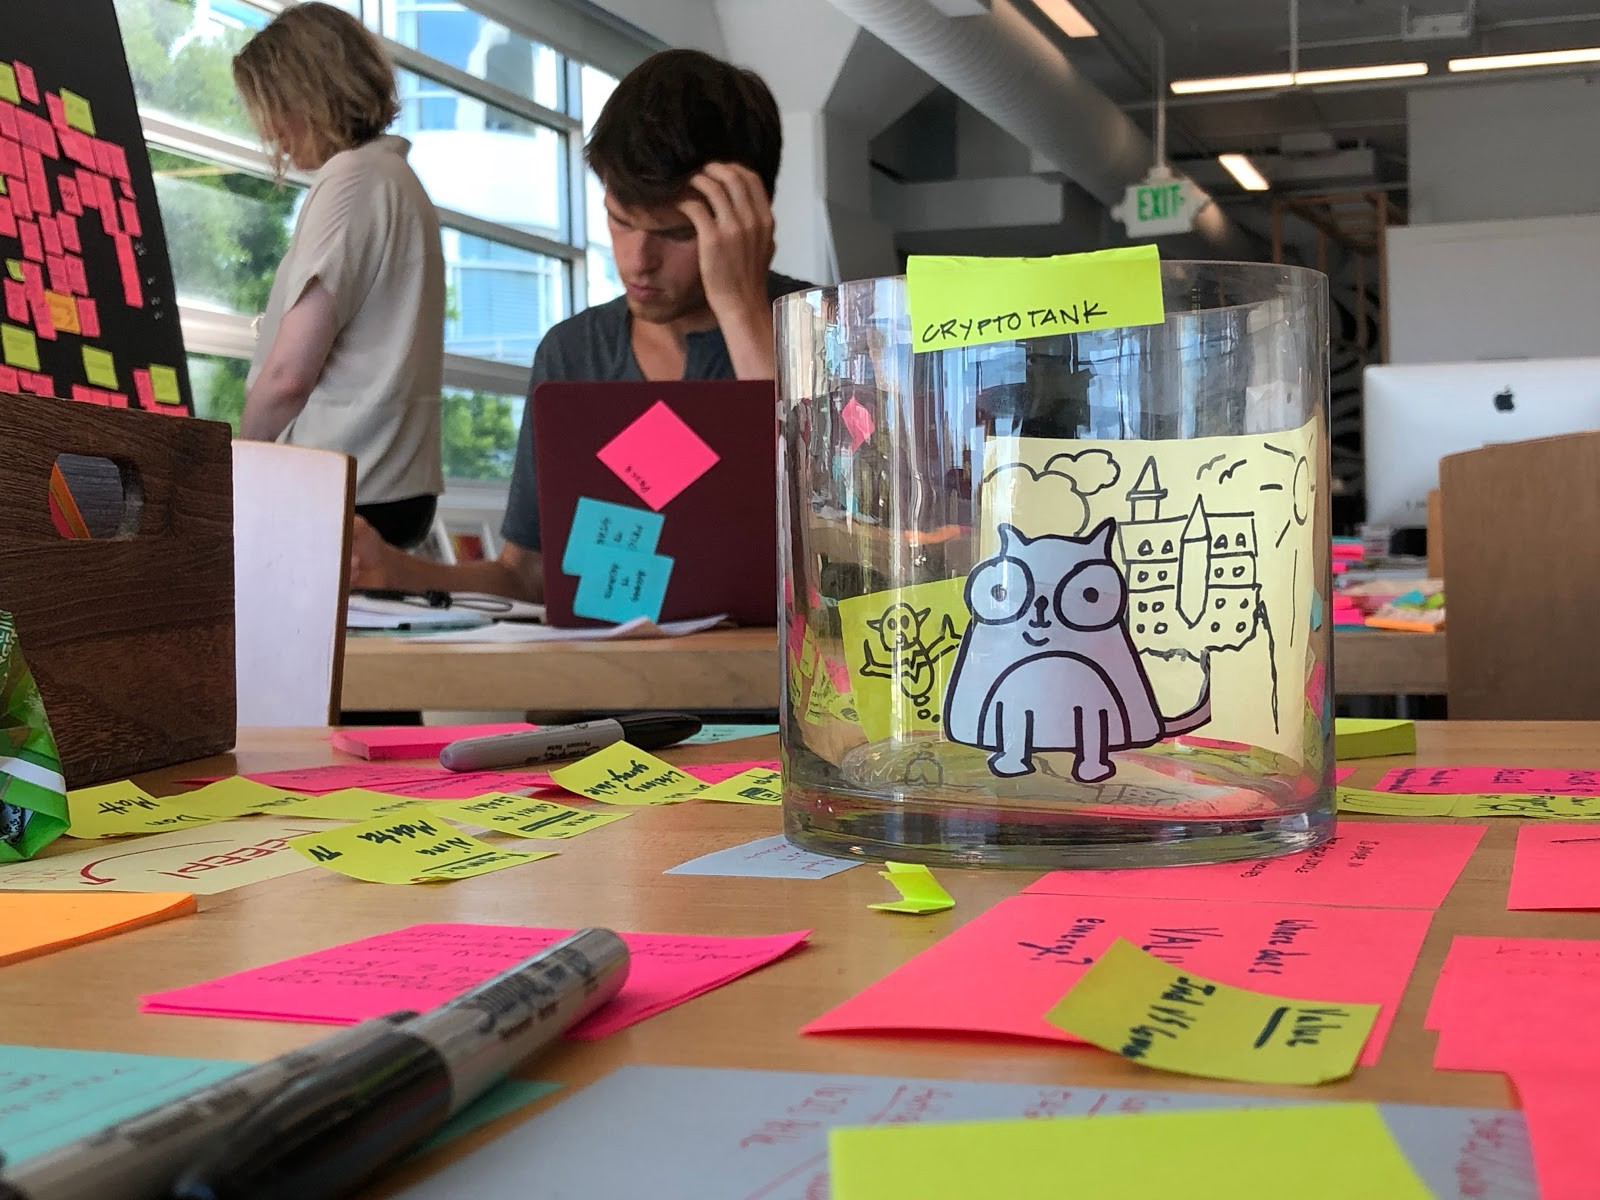 Some of our prototypes explored giving digital collectibles space in the physical world.